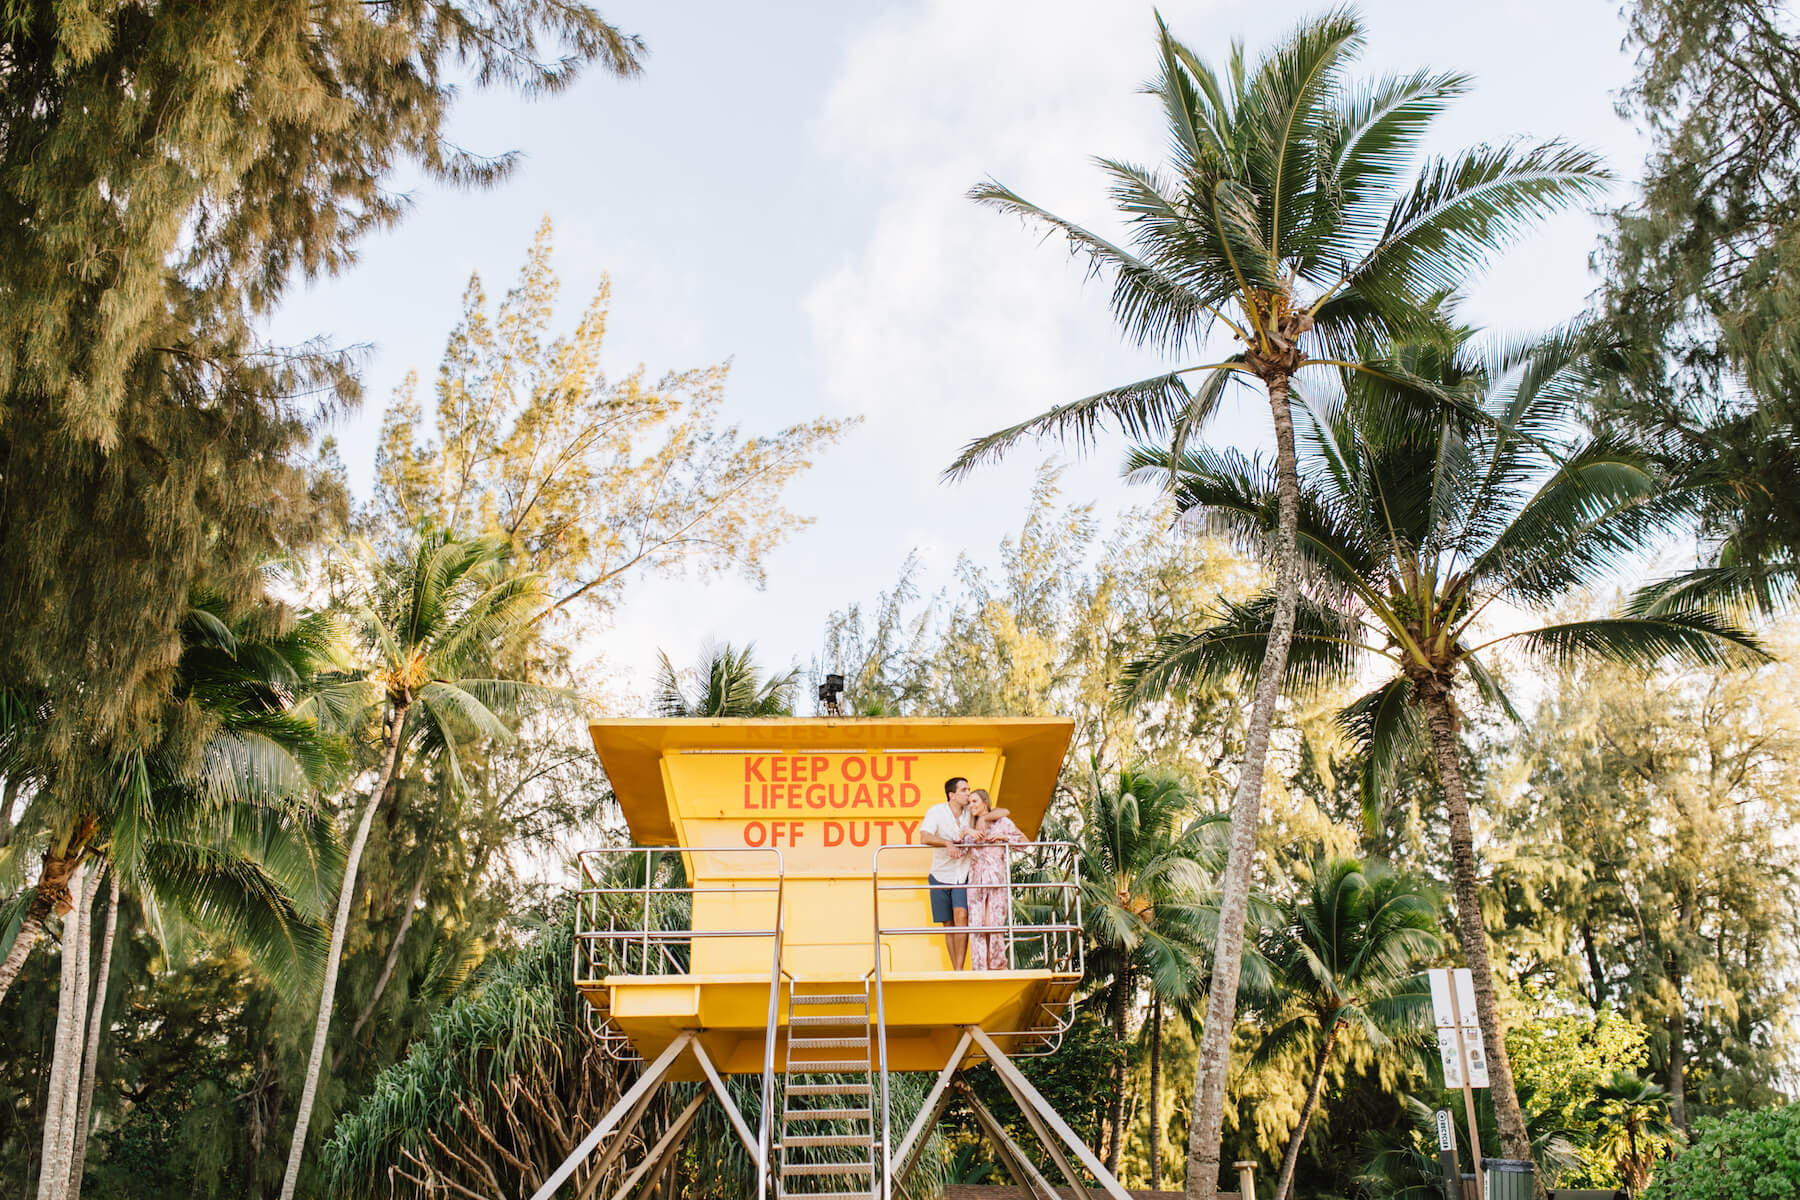 couple standing on a lifeguard tower on the beach in Maui, Hawaii